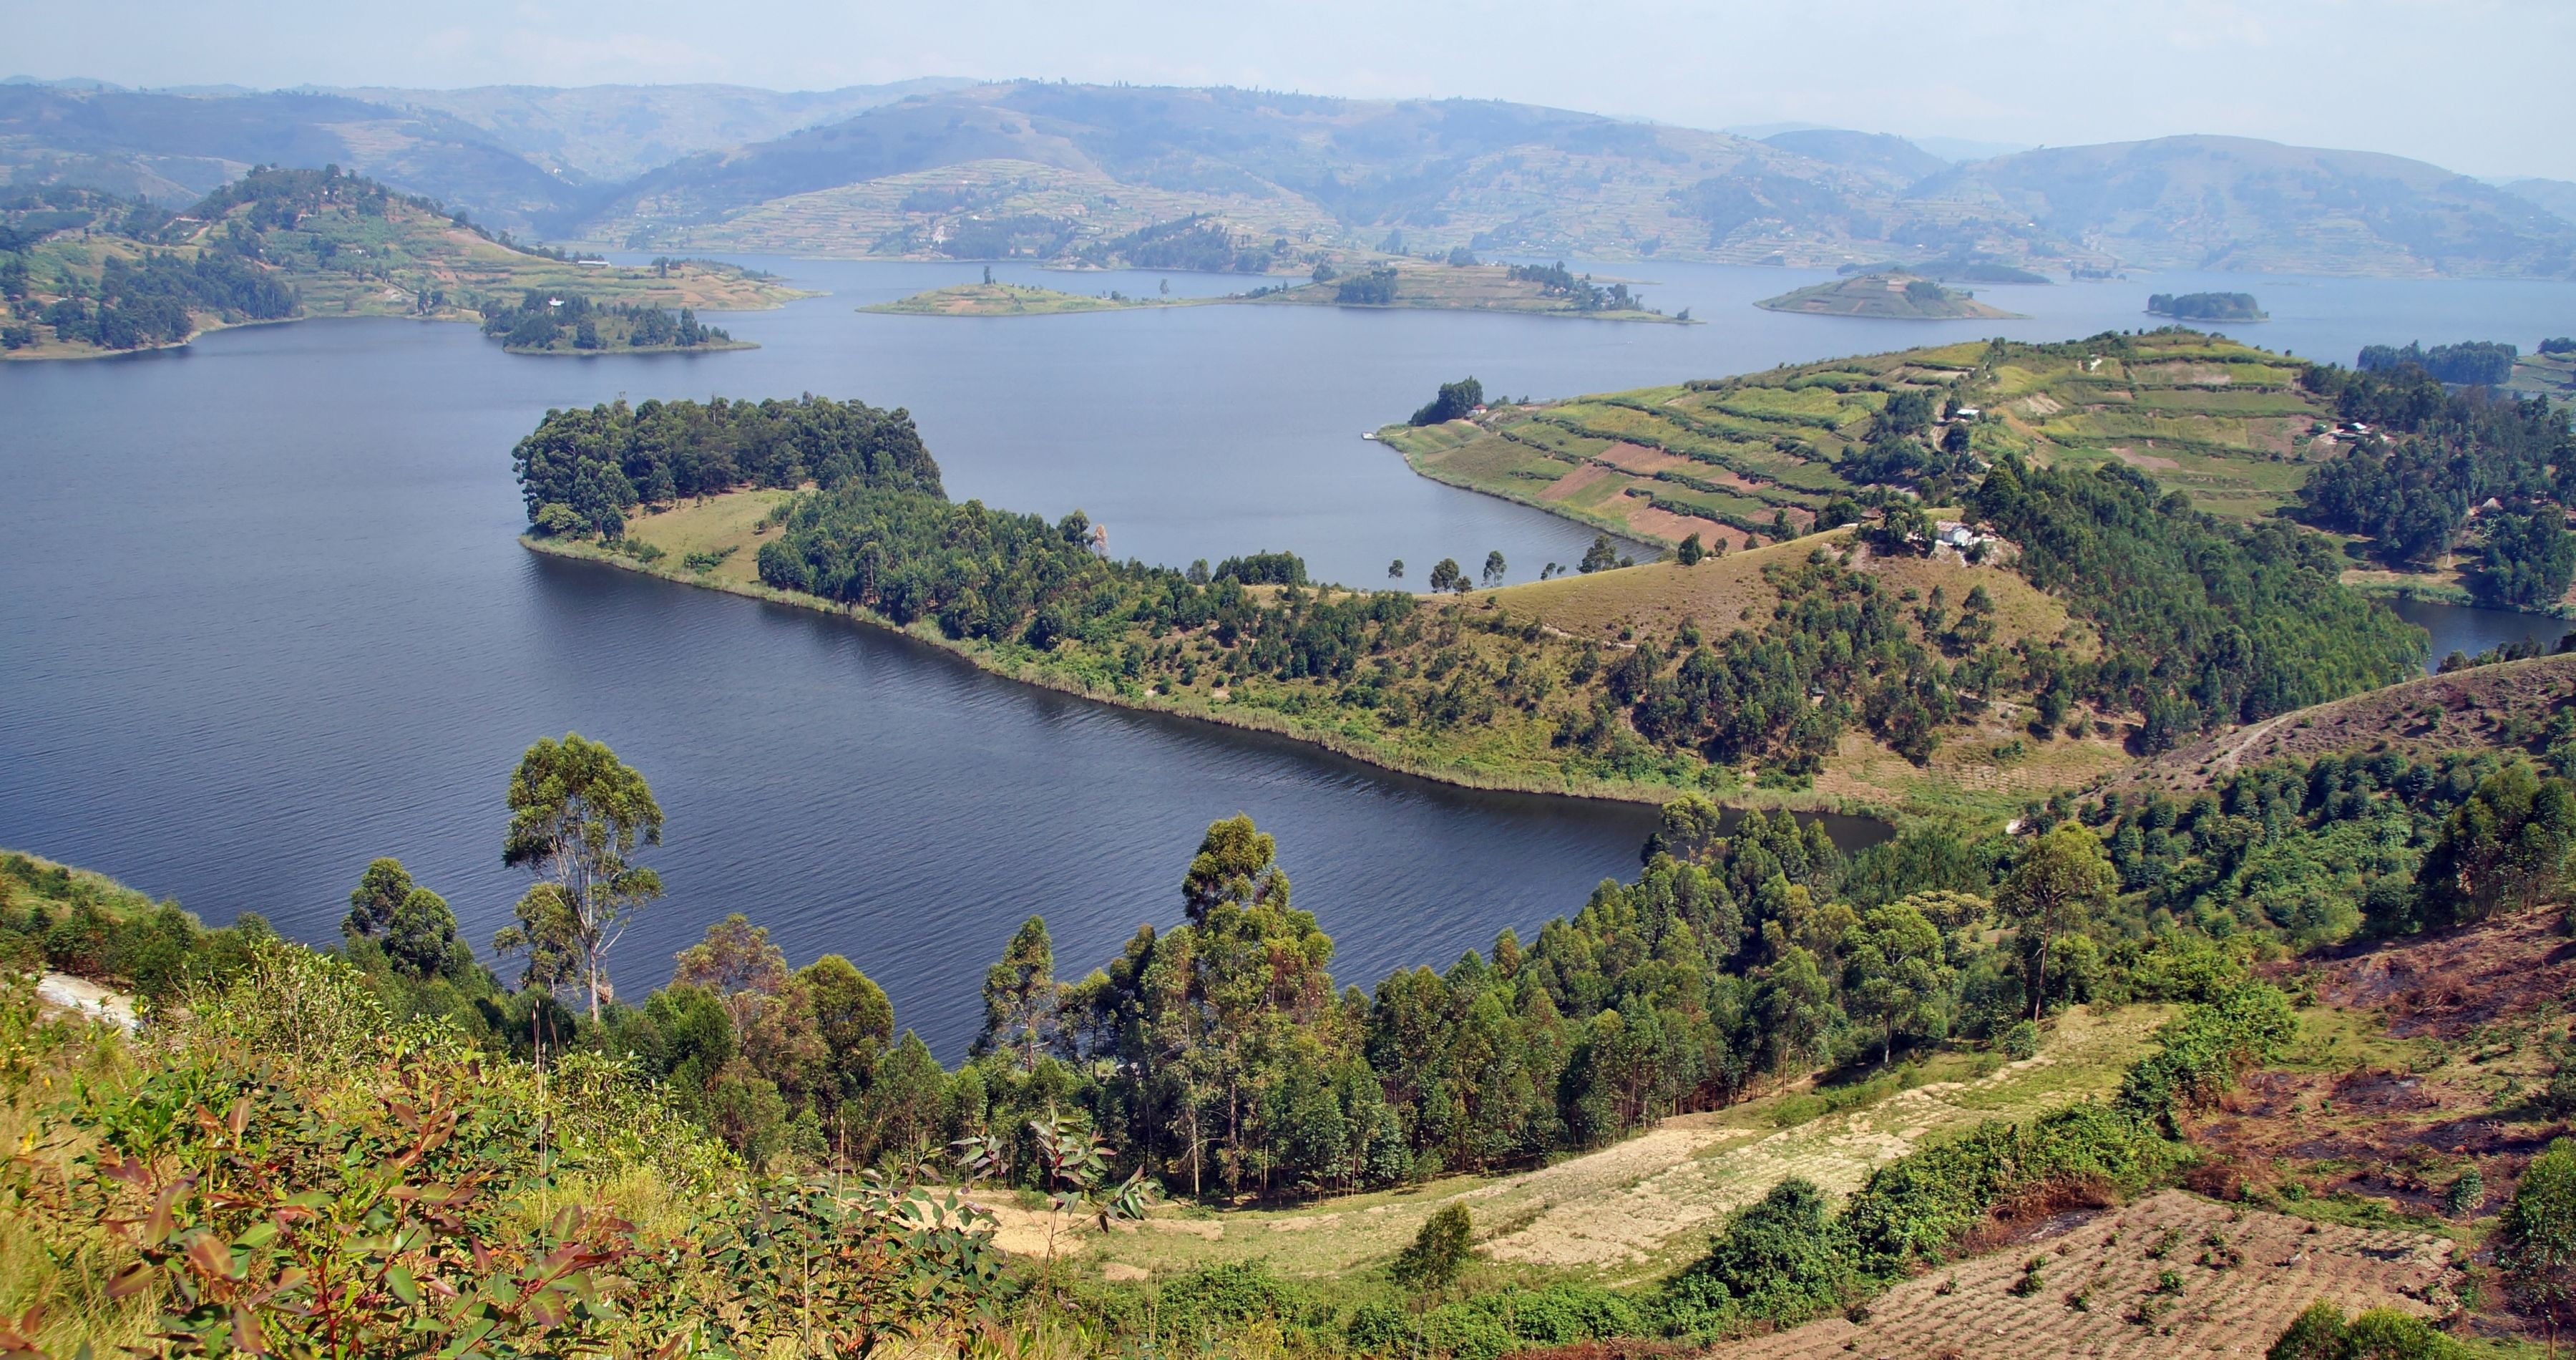 Peninsula on Lake Bunyonyi in Uganda, Africa - Uganda travel guide